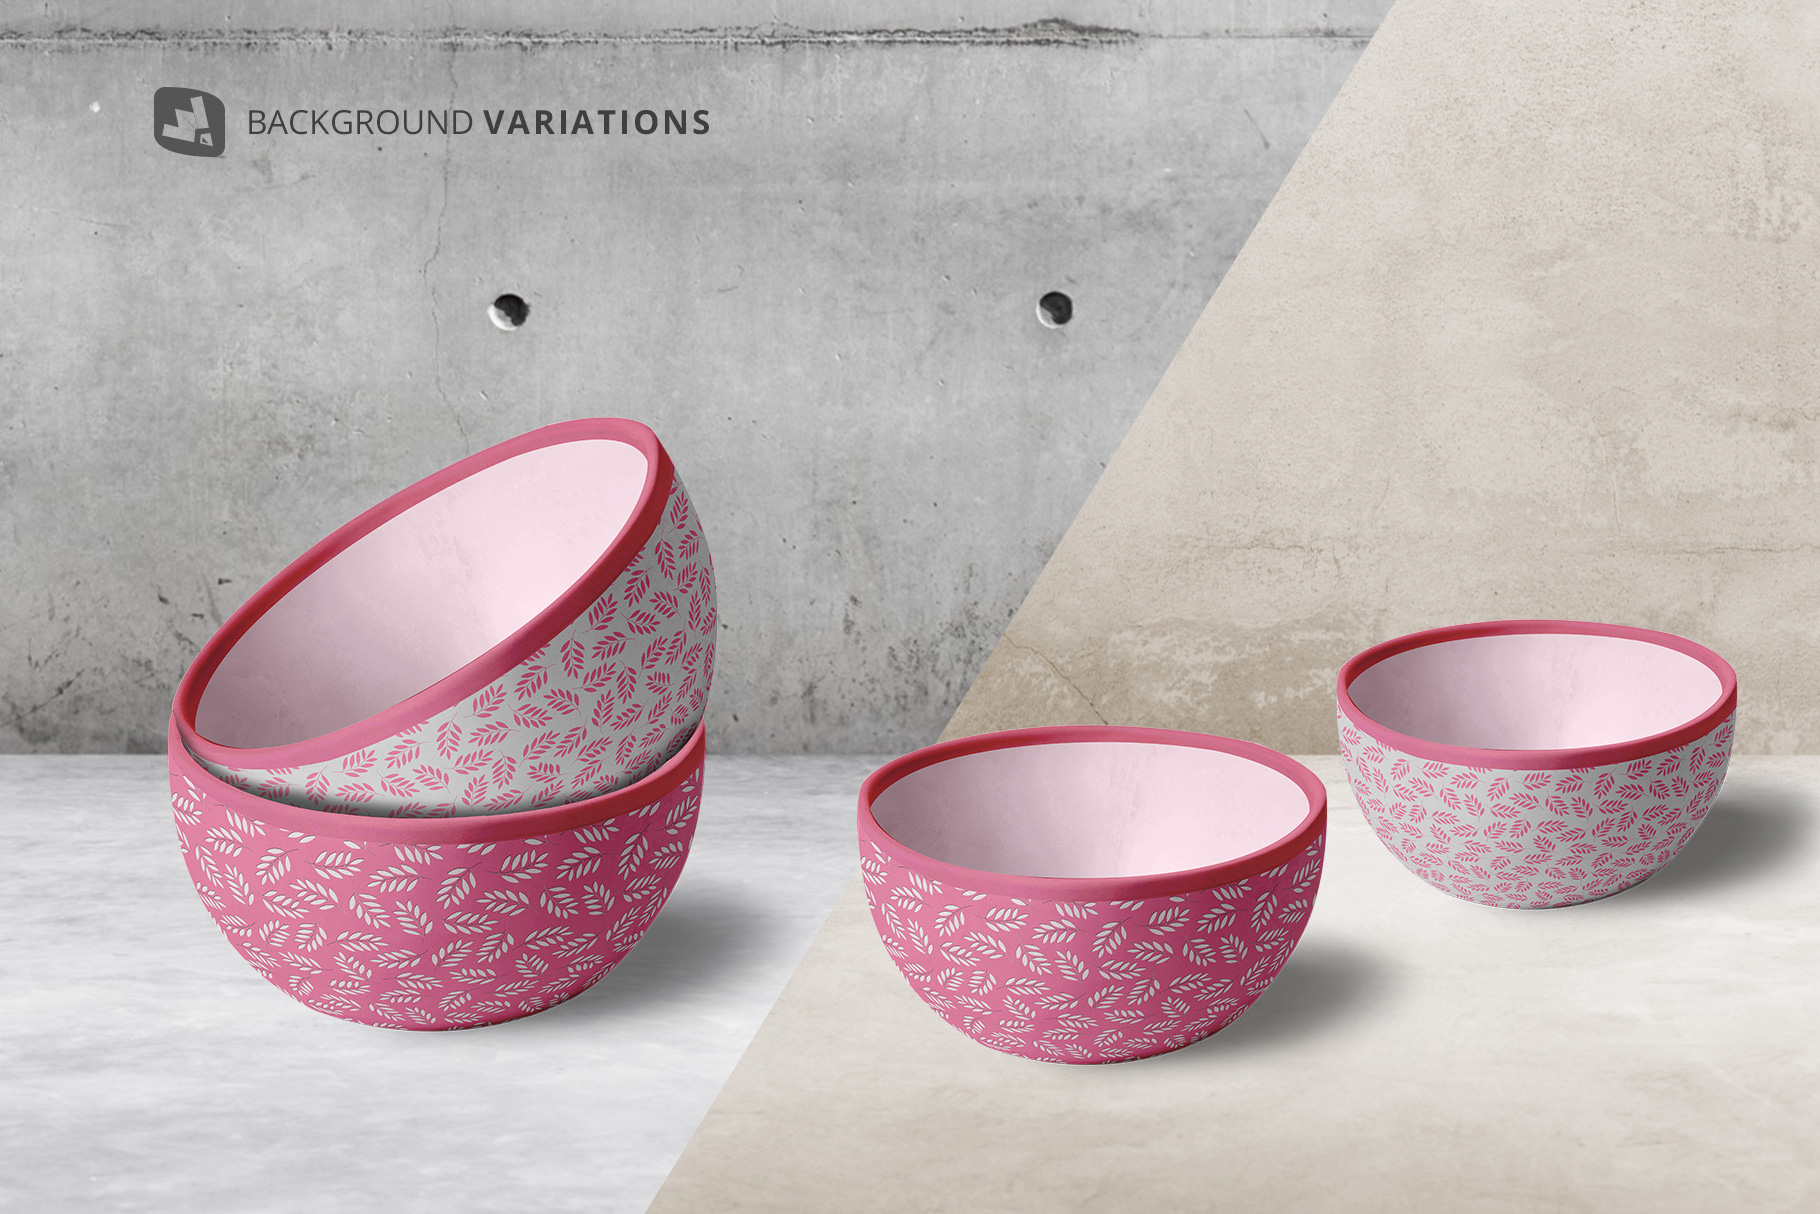 background options of the front view bowl mockup vol.2